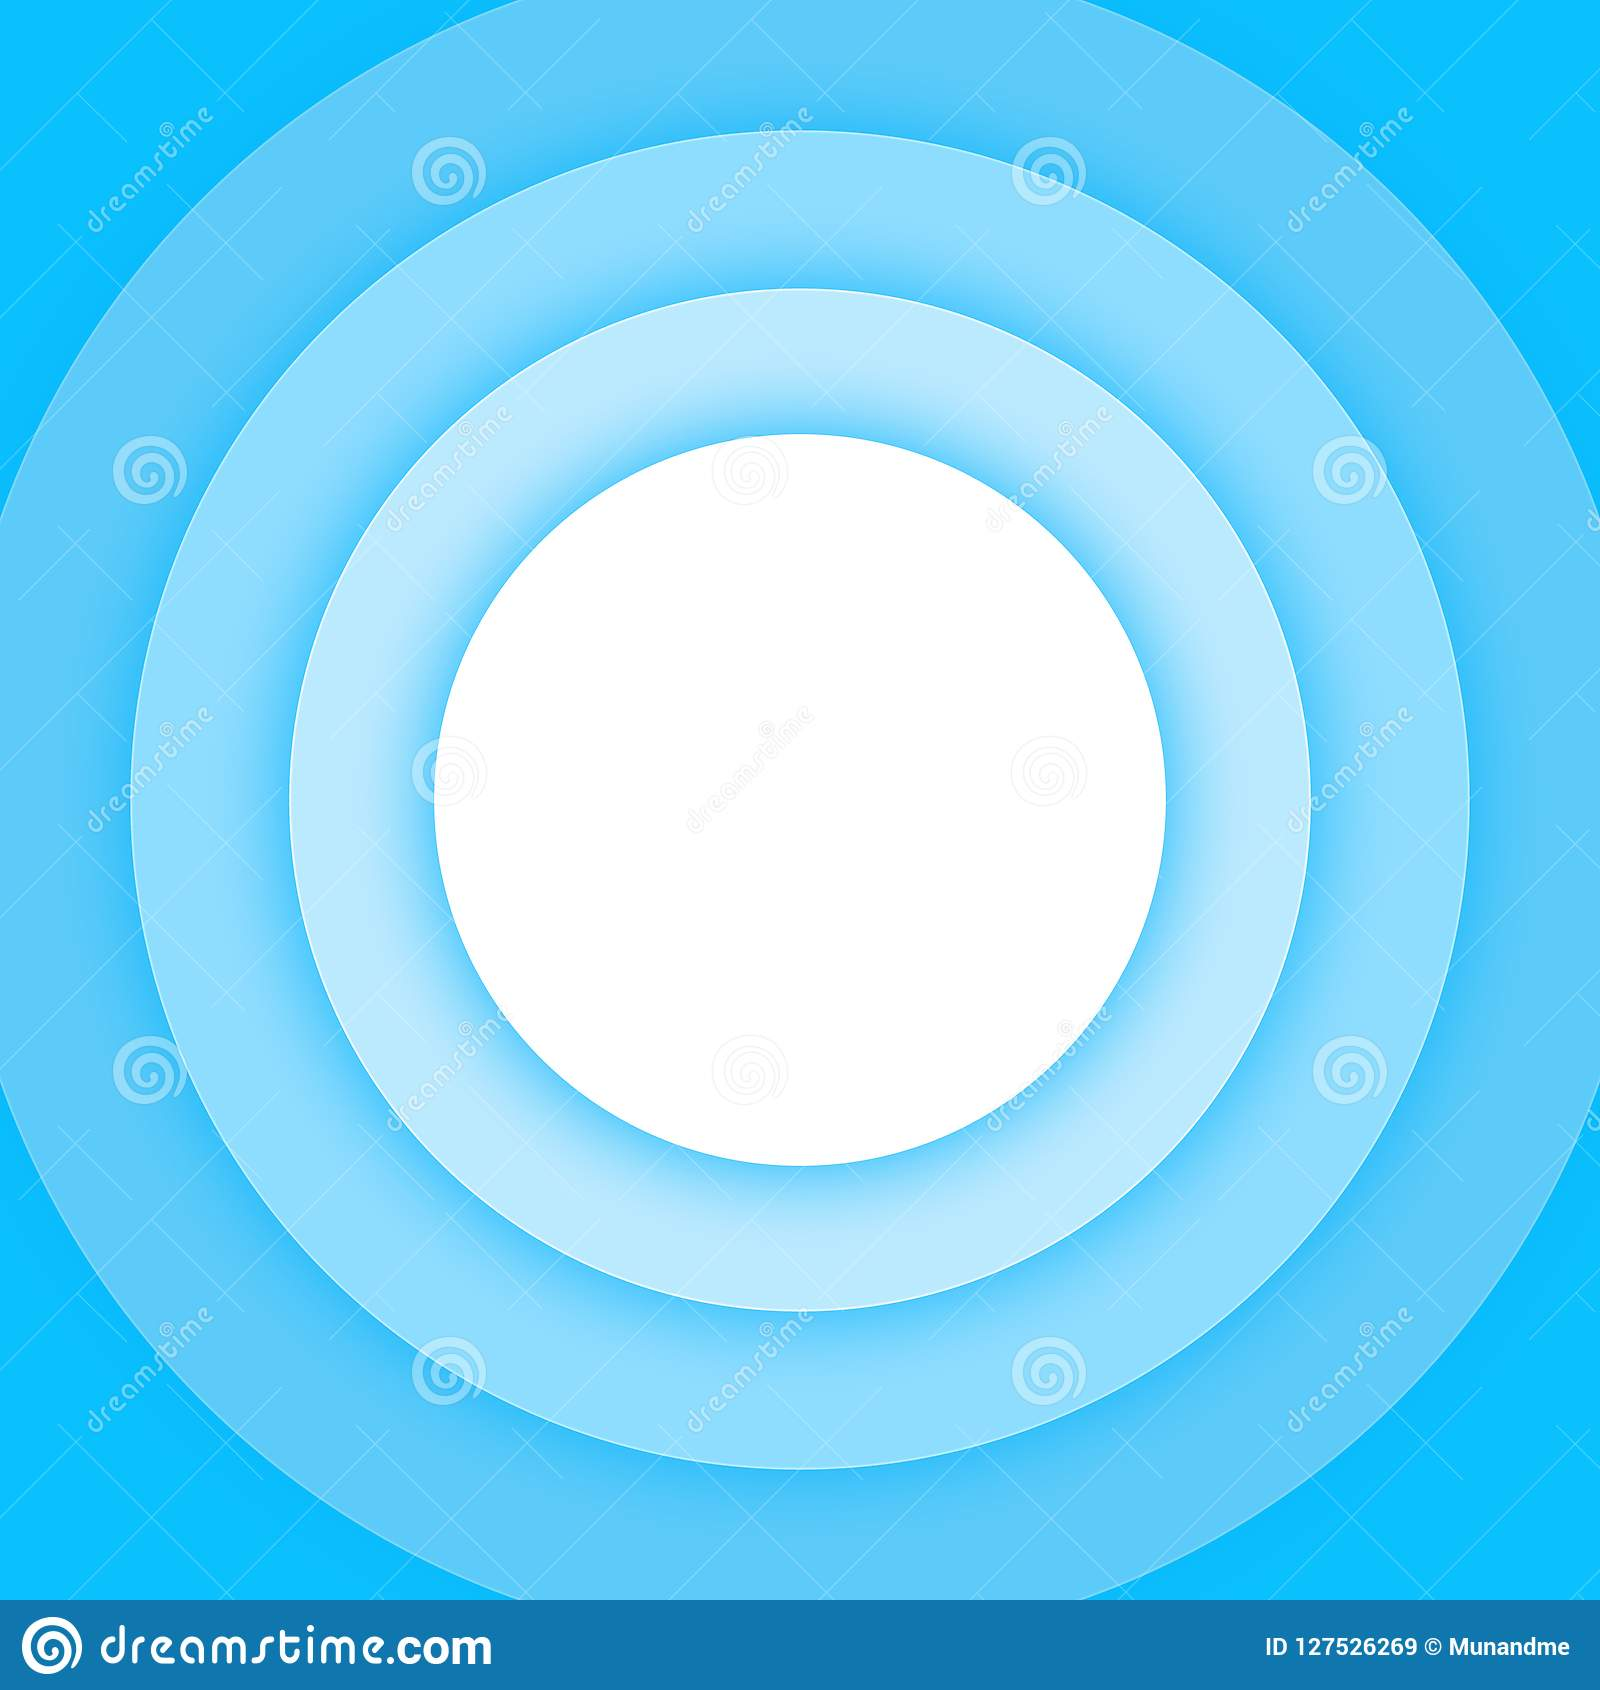 Blue Circles Overlap With Drop Shadow Background Stock